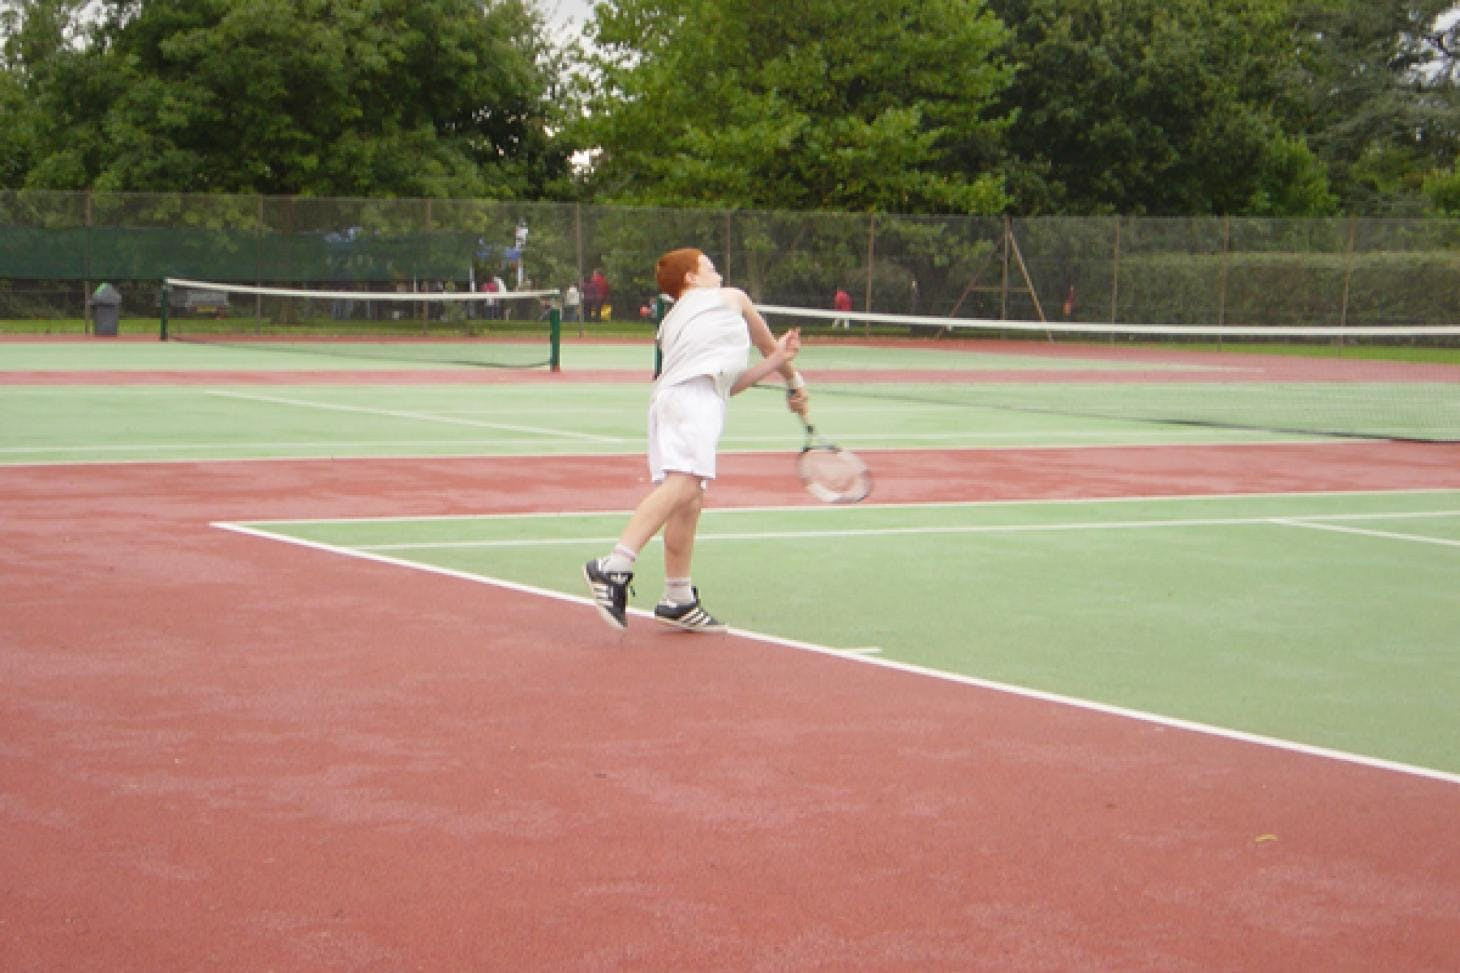 Boston Manor Park Outdoor | Hard (macadam) tennis court